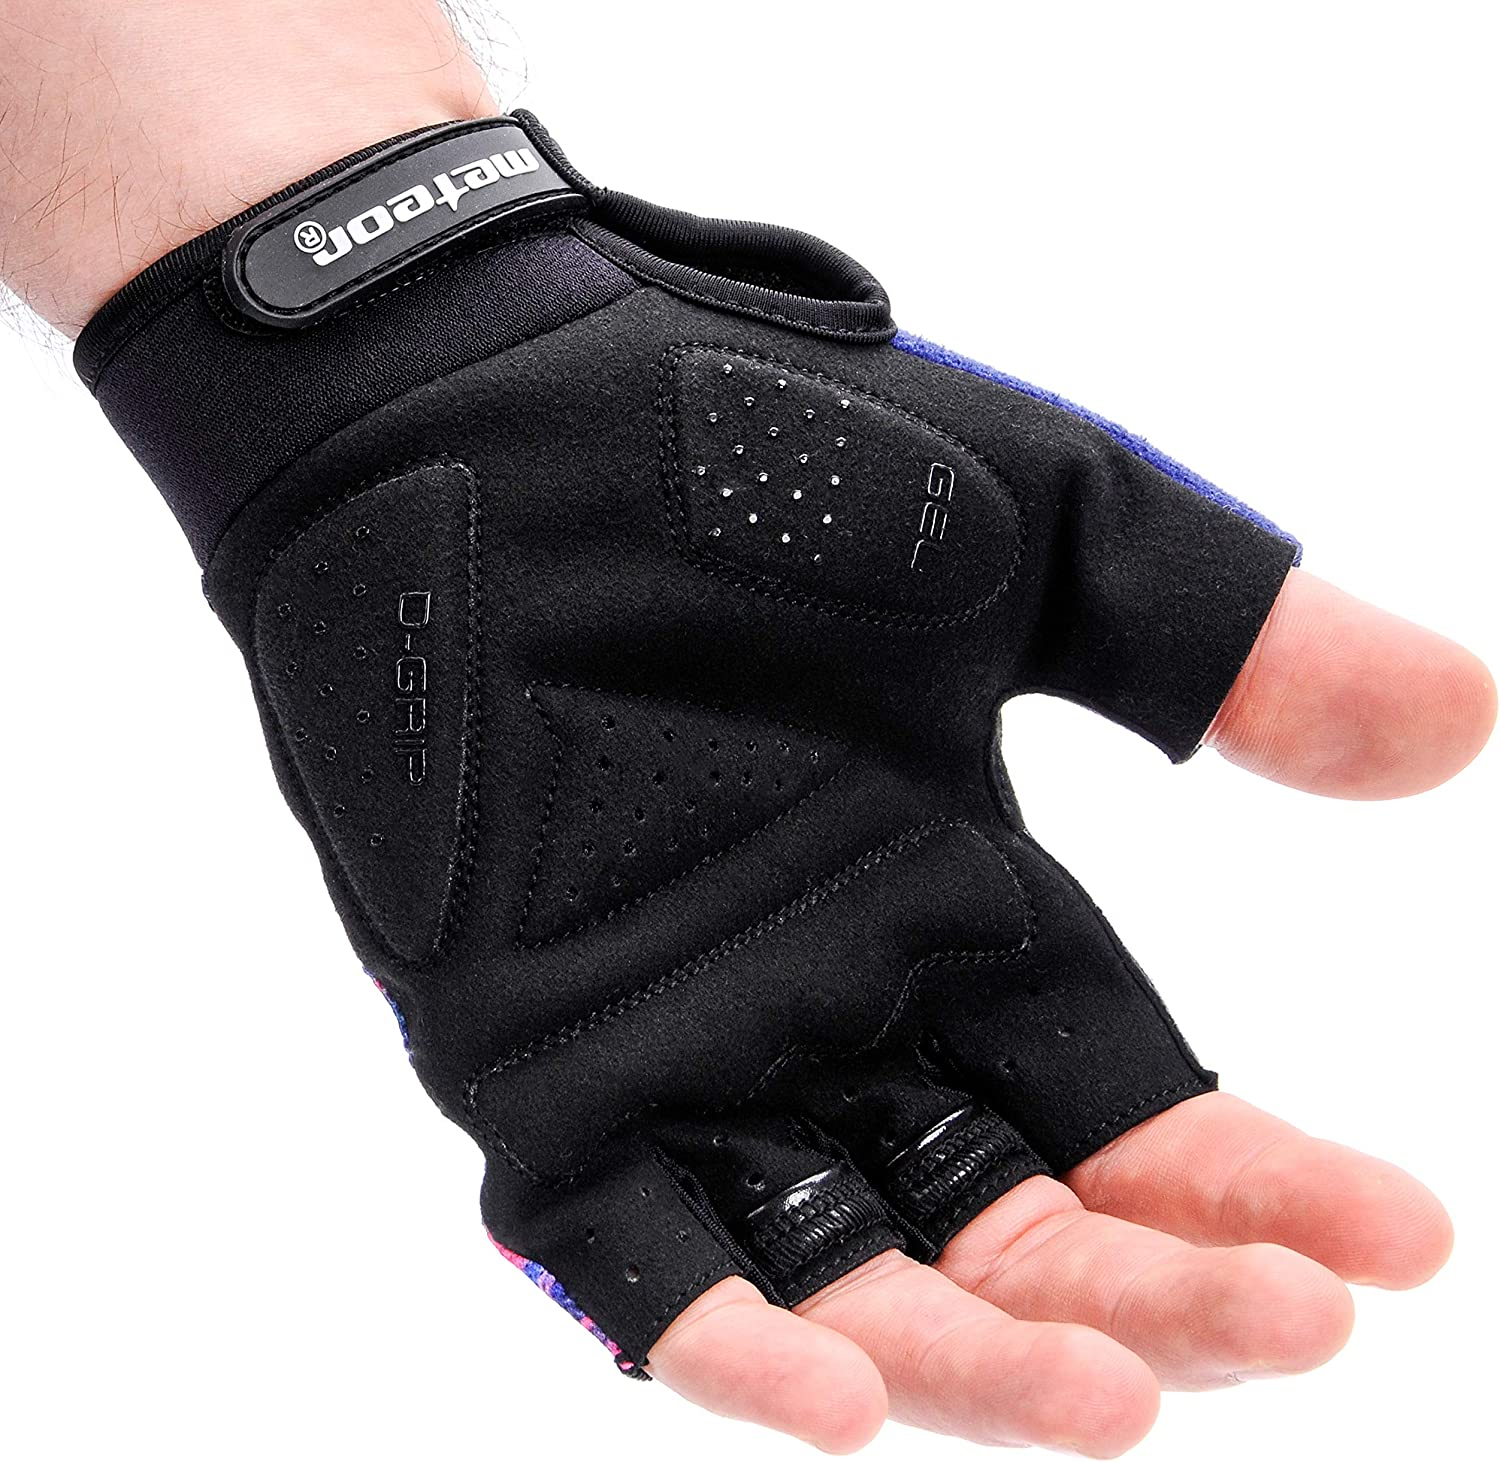 meteor Cycling Gloves Gym Antislip Grip Adjustable Bike Racing Bicycle Bmx Mtb Weight Lifting Fitness Light Silicone Pad Accessories Riding Men Women Kids Children